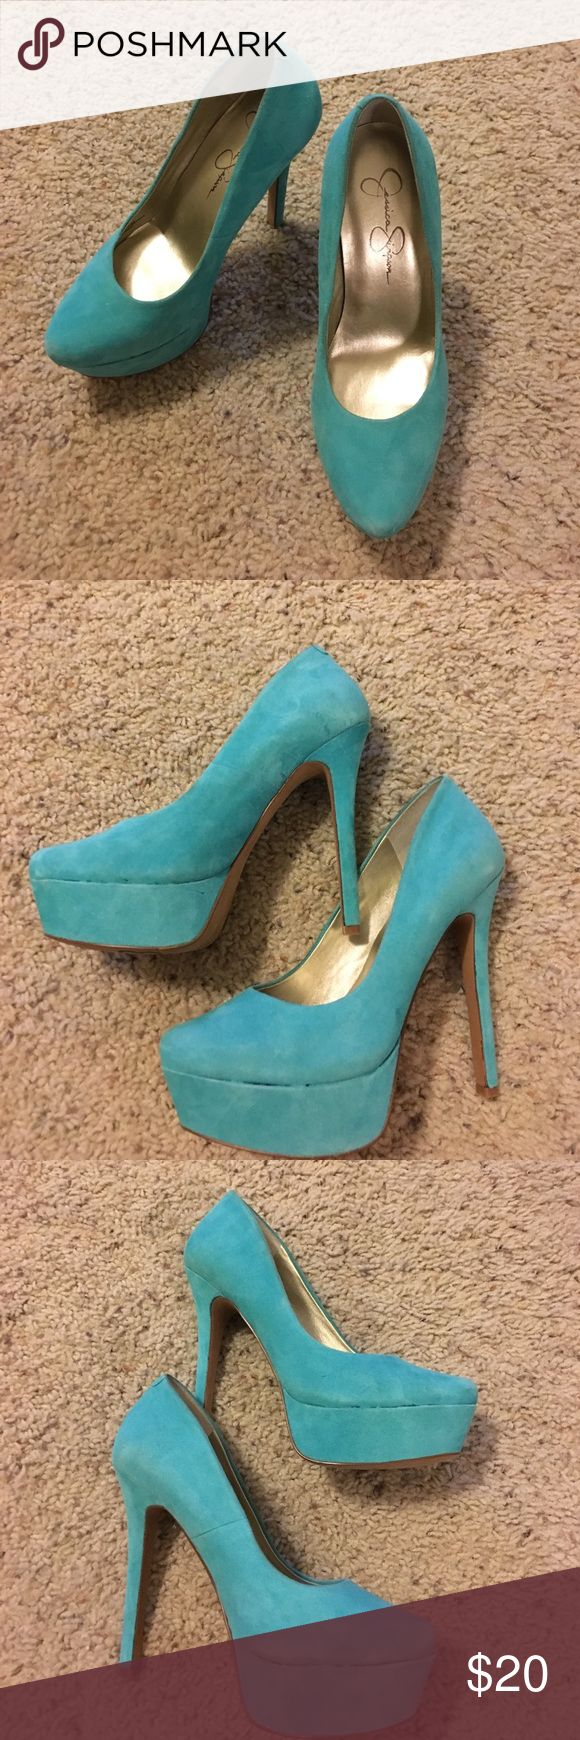 Jessica Simpson Tiffany blue suede pumps Size 6 pumps worn once for photographs. Discoloration in photos is how the material lays. No stains. Jessica Simpson Shoes Platforms